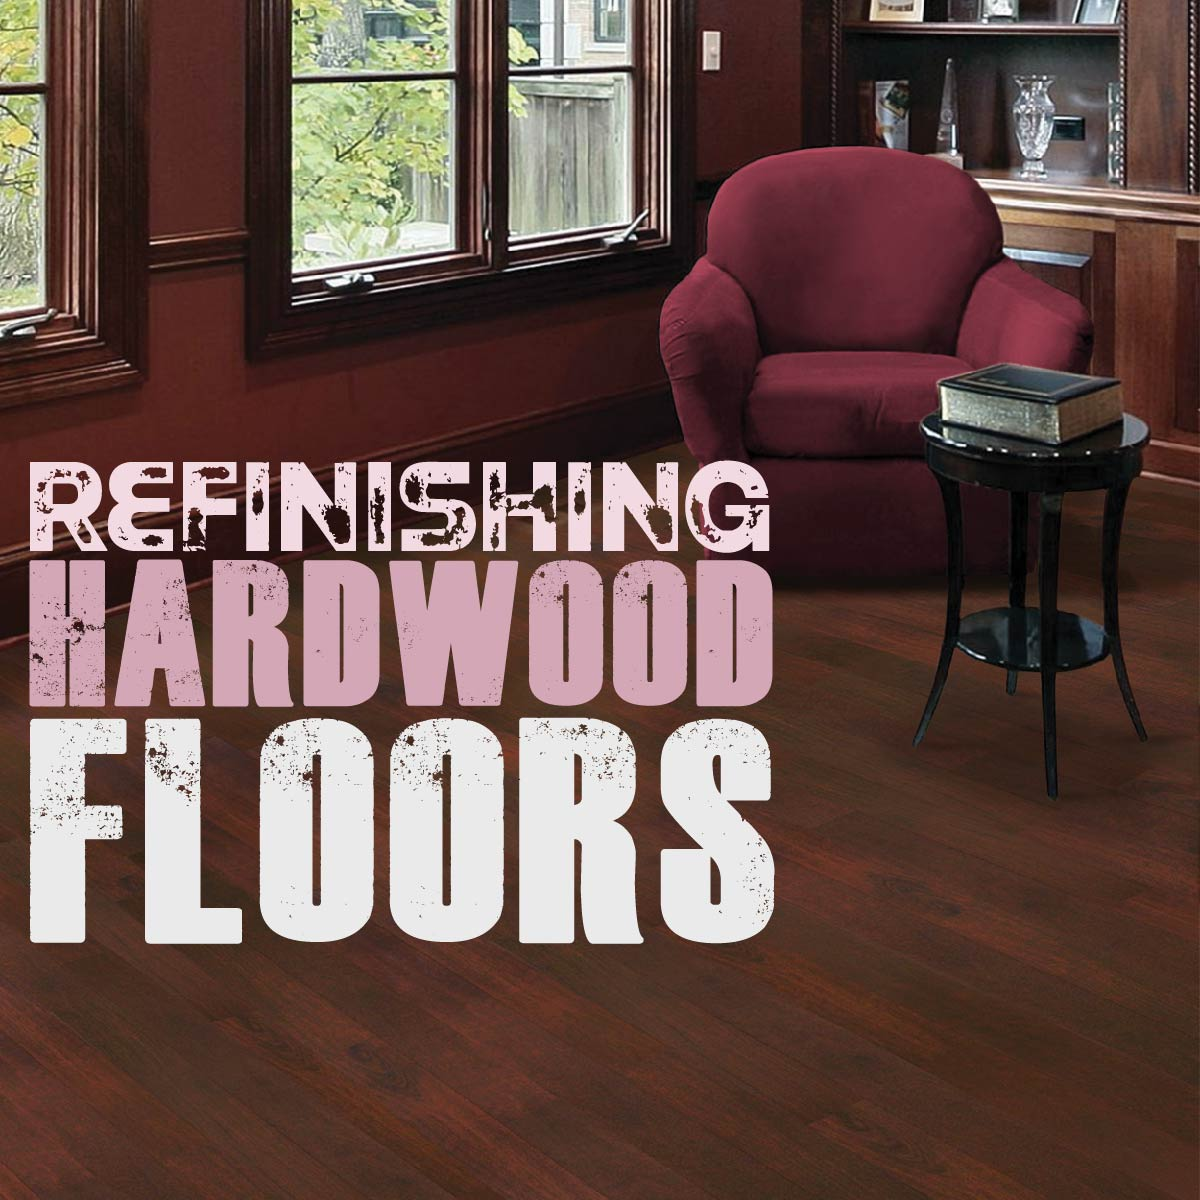 Refinishing hardwood floors gritty text with a dark red hardwood room scene.